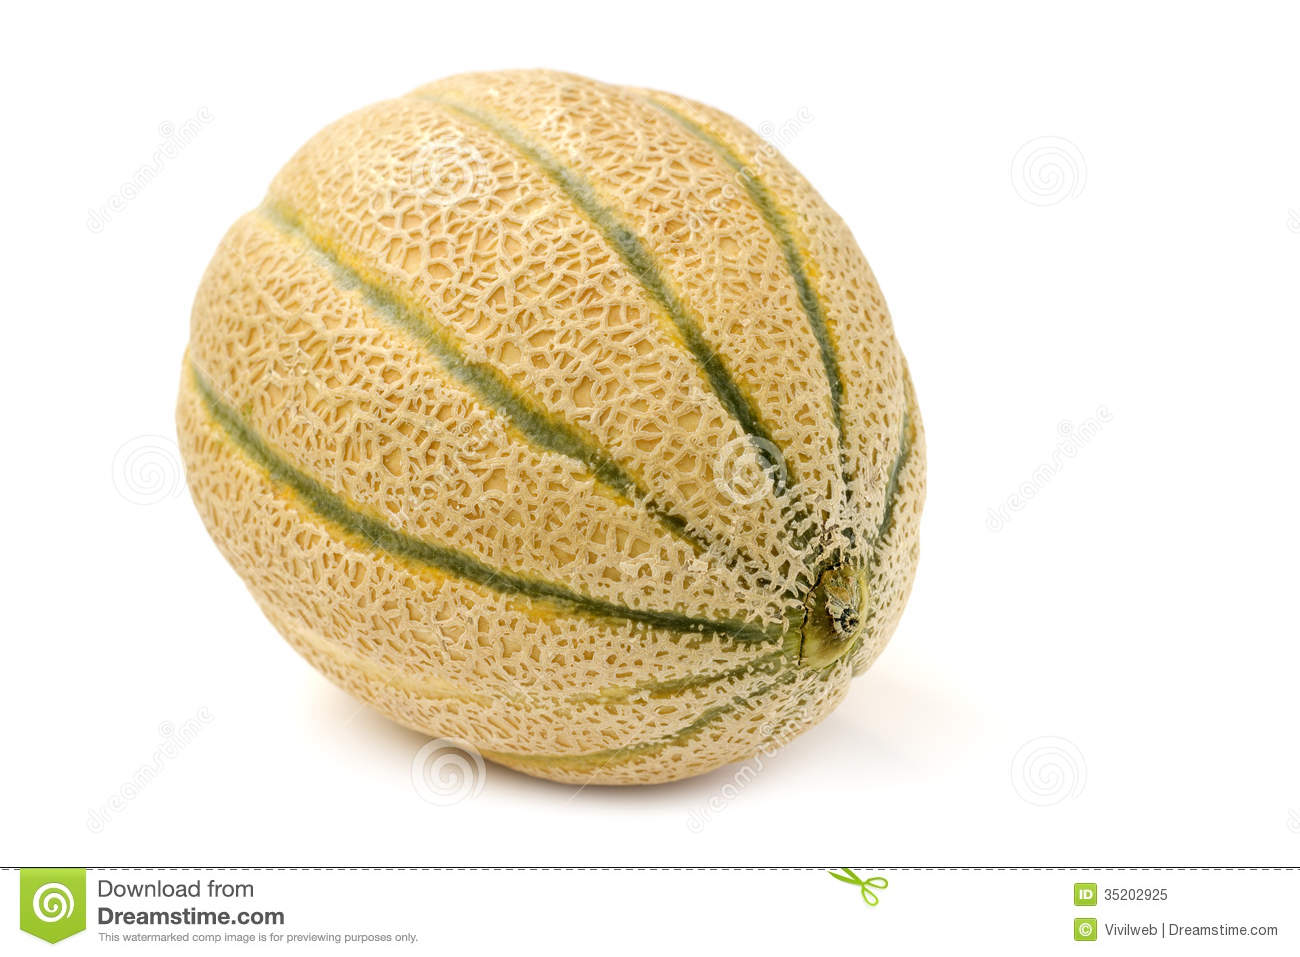 how to cut up a cantaloupe